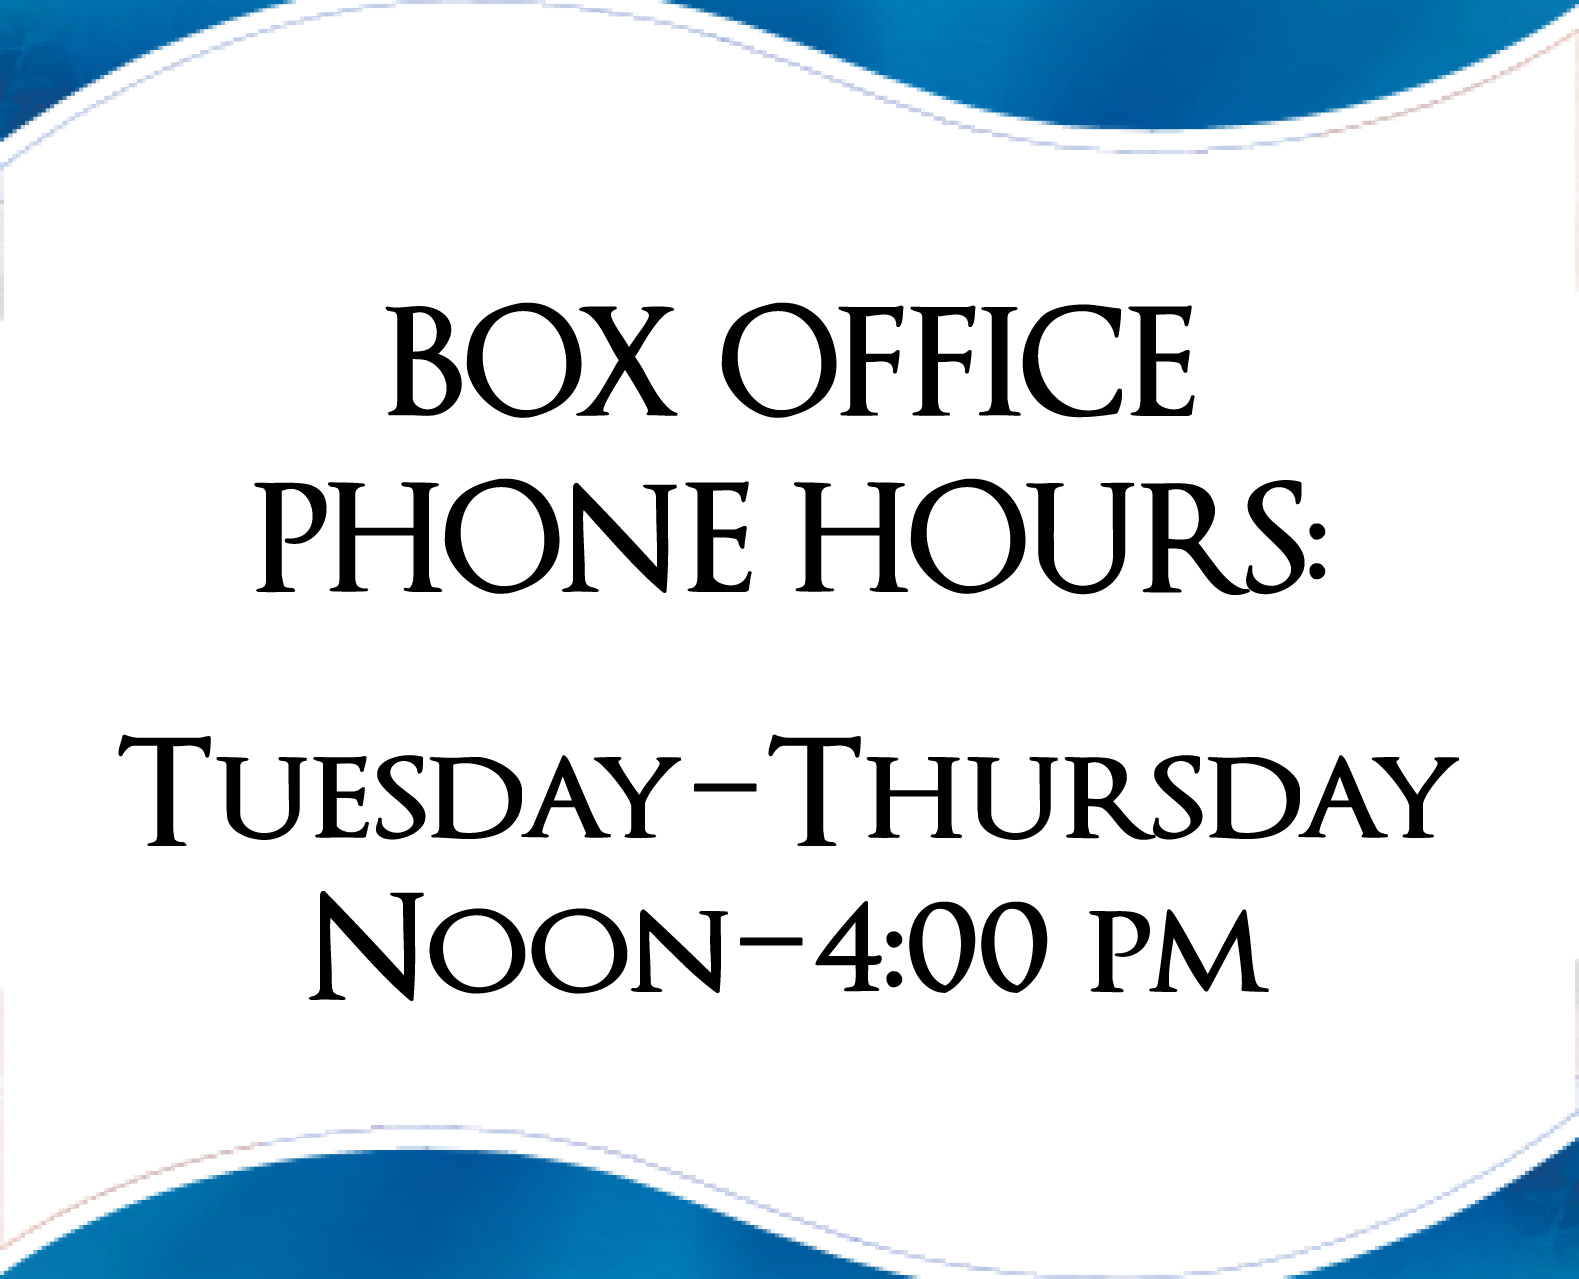 Box Office Hours Tuesday thru Thursday 12 to 4 PM